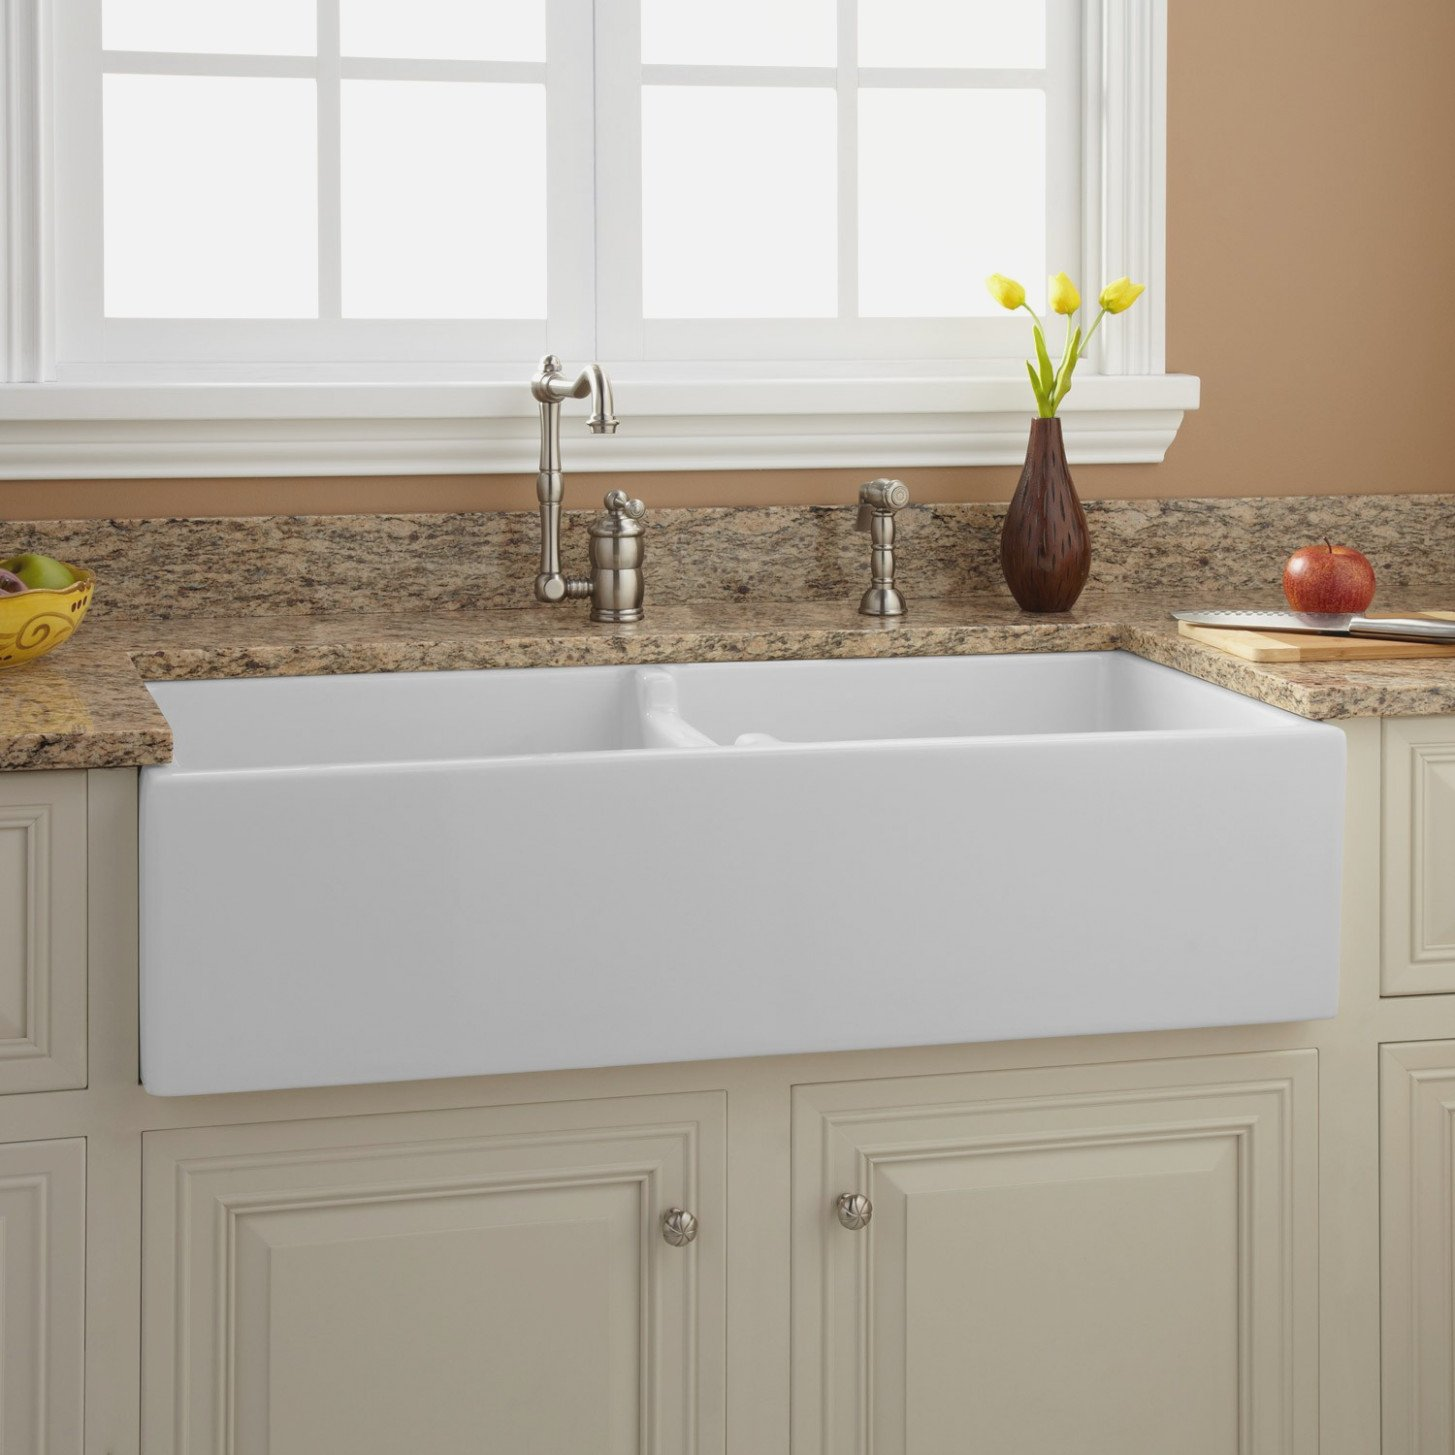 43-risinger-double-bowl-fireclay-farmhouse-sink-white-kitchen-high-end-kitchen-sinks-and-faucets